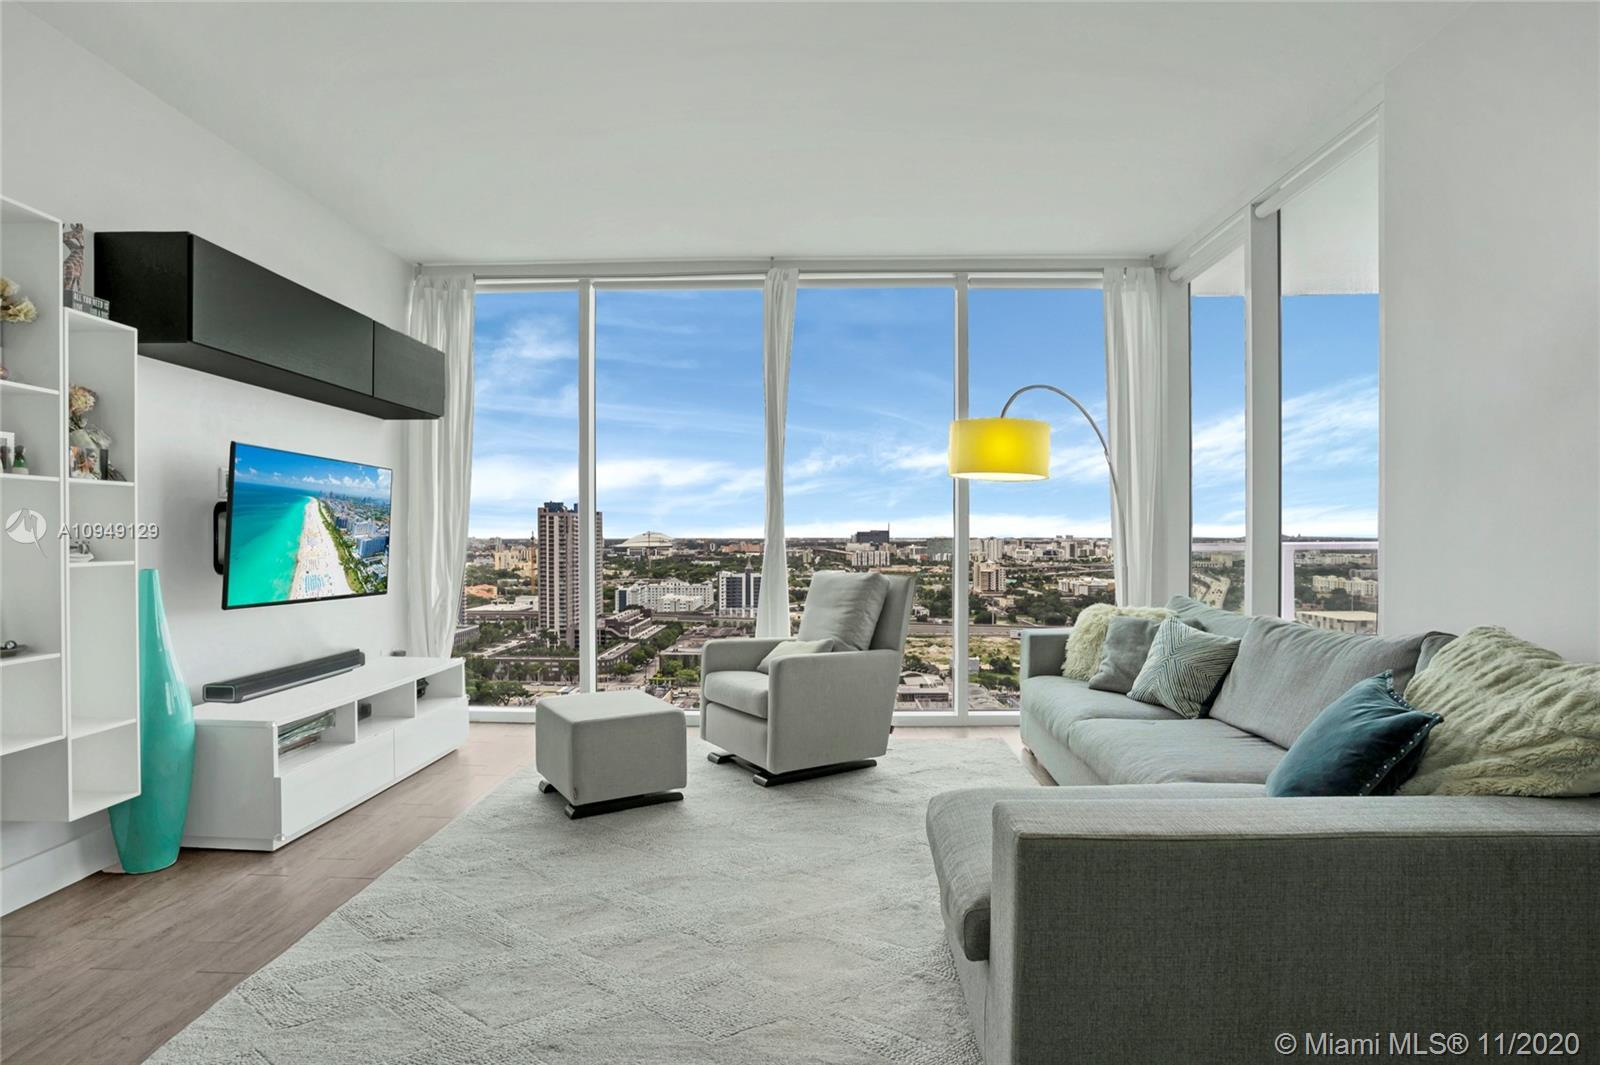 Remodeled unit with endless views upon entry in this 2 bed / 2.5 bath residence in the coveted Ten M